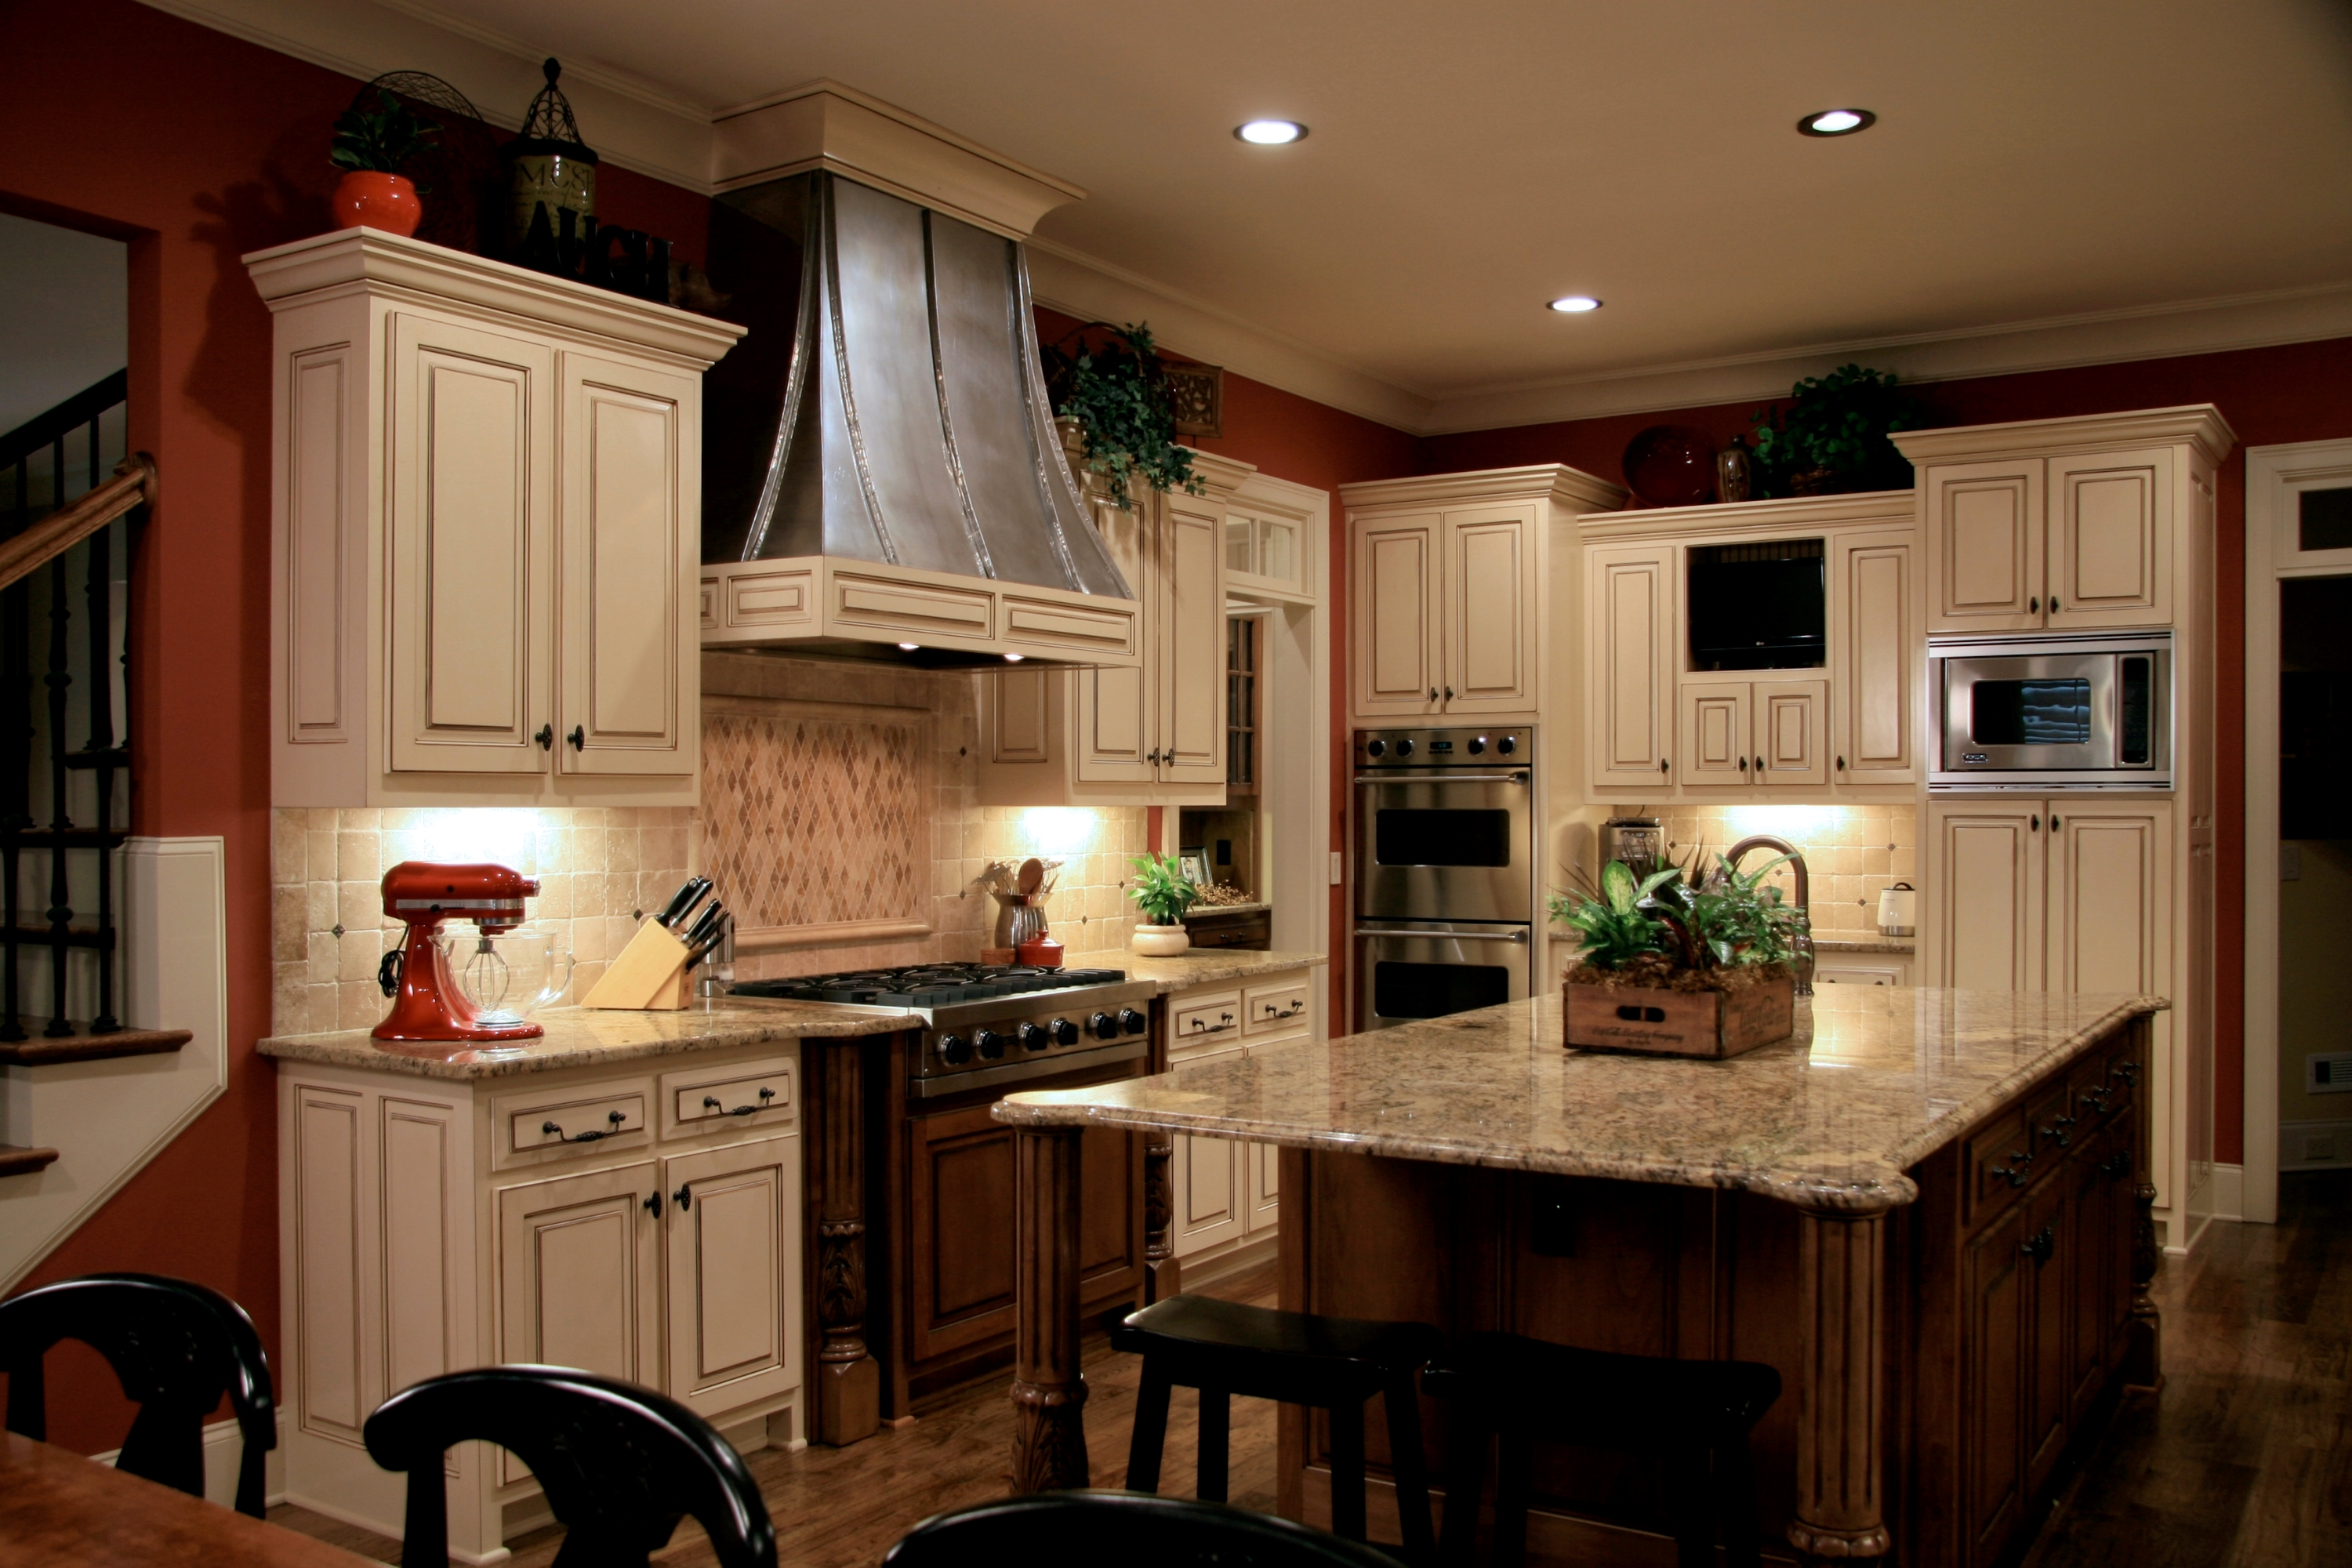 Recessed Lighting In Kitchen Install Recessed Lighting In A Kitchen Pro Construction Guide